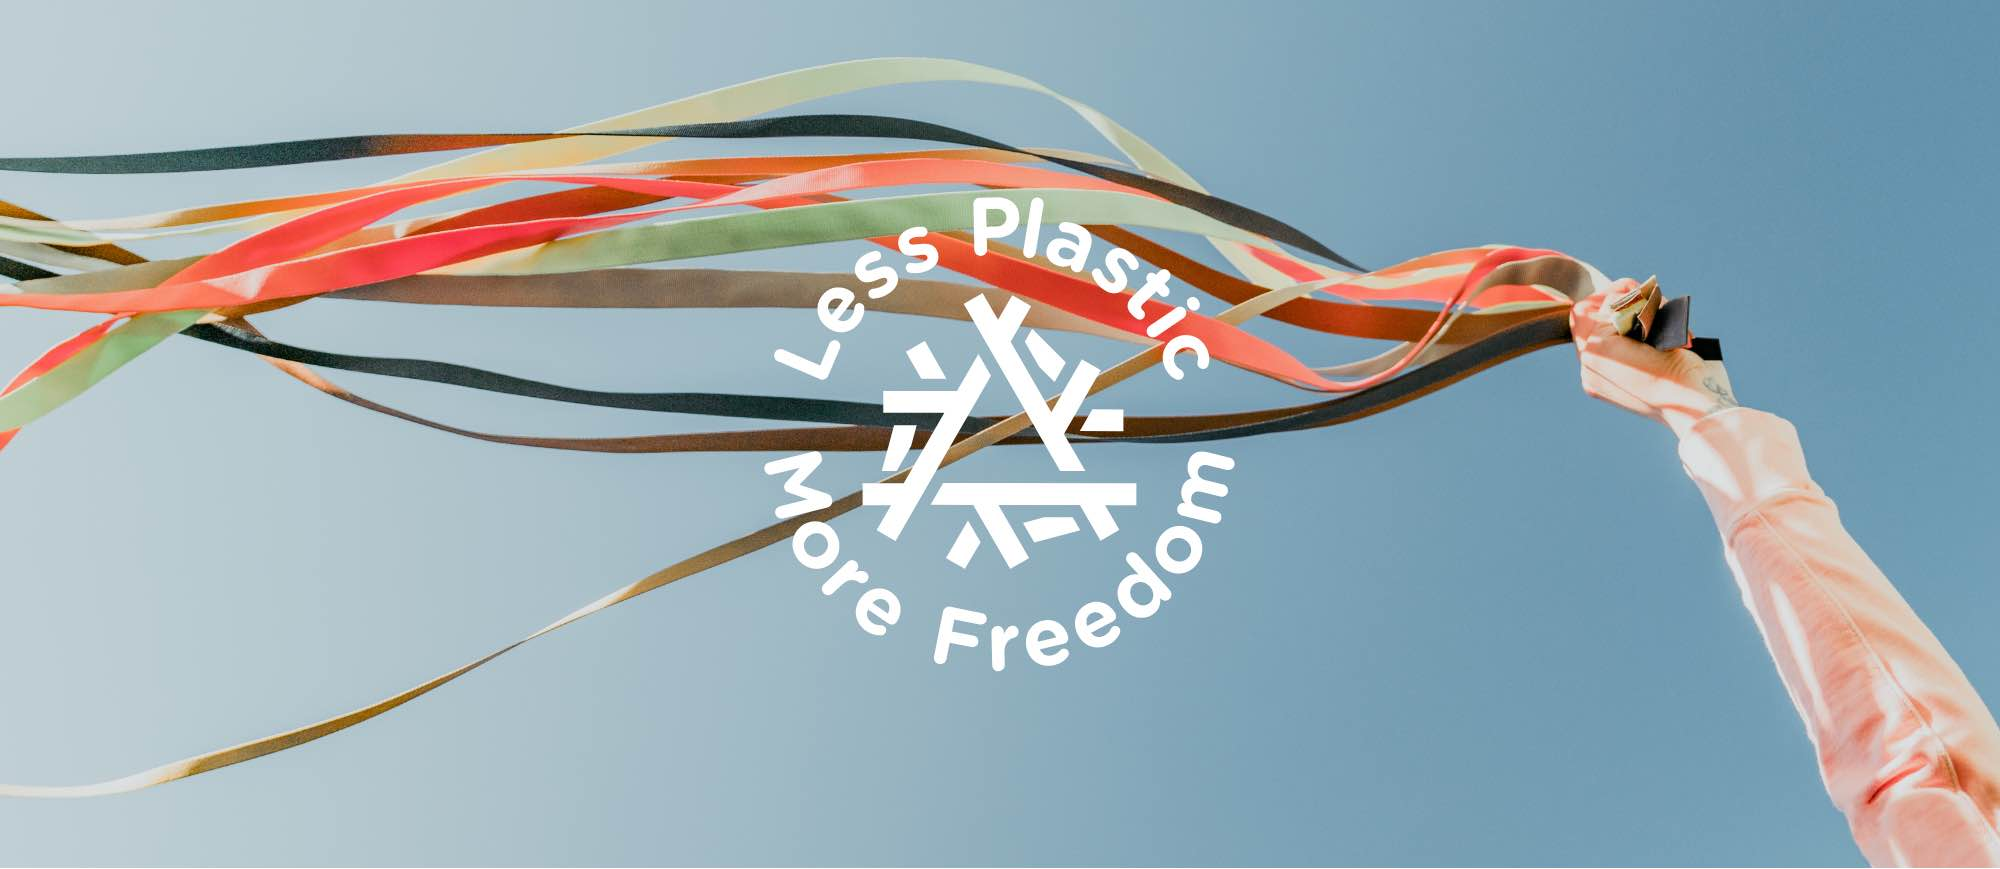 Less Plastic. More Freedom.